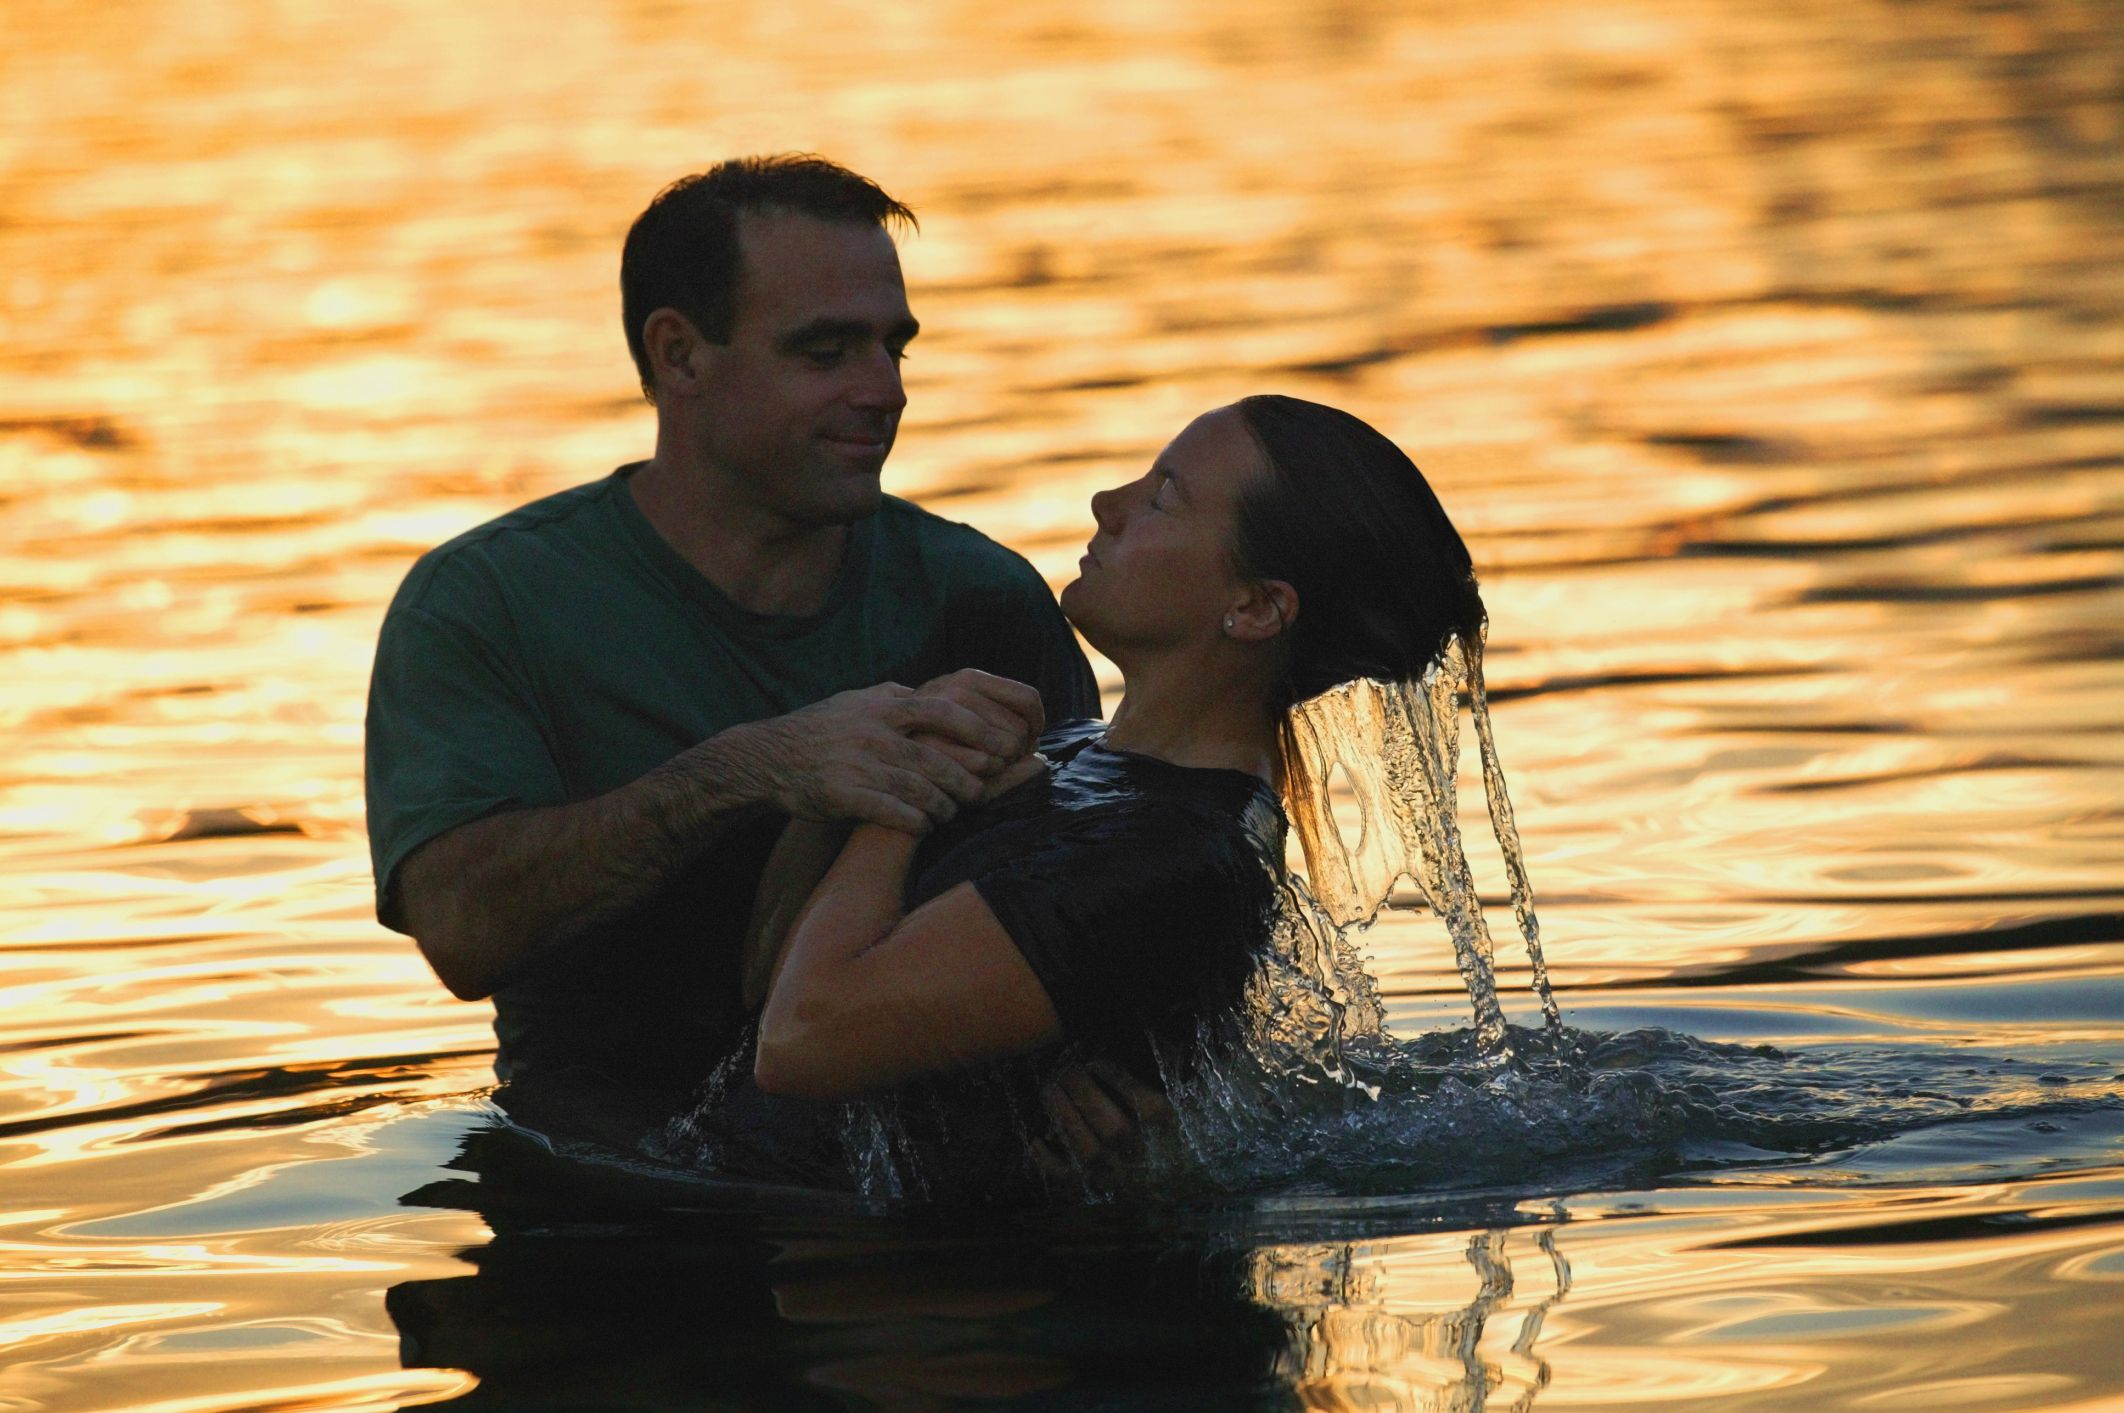 the history and issues of baptism in becoming a christian Baptism does not make you a christian it is a step of obedience once you have placed your faith in jesus for salvation baptism is a visual and symbolic demonstration of a person's union with christ in the likeness of his death and resurrection.